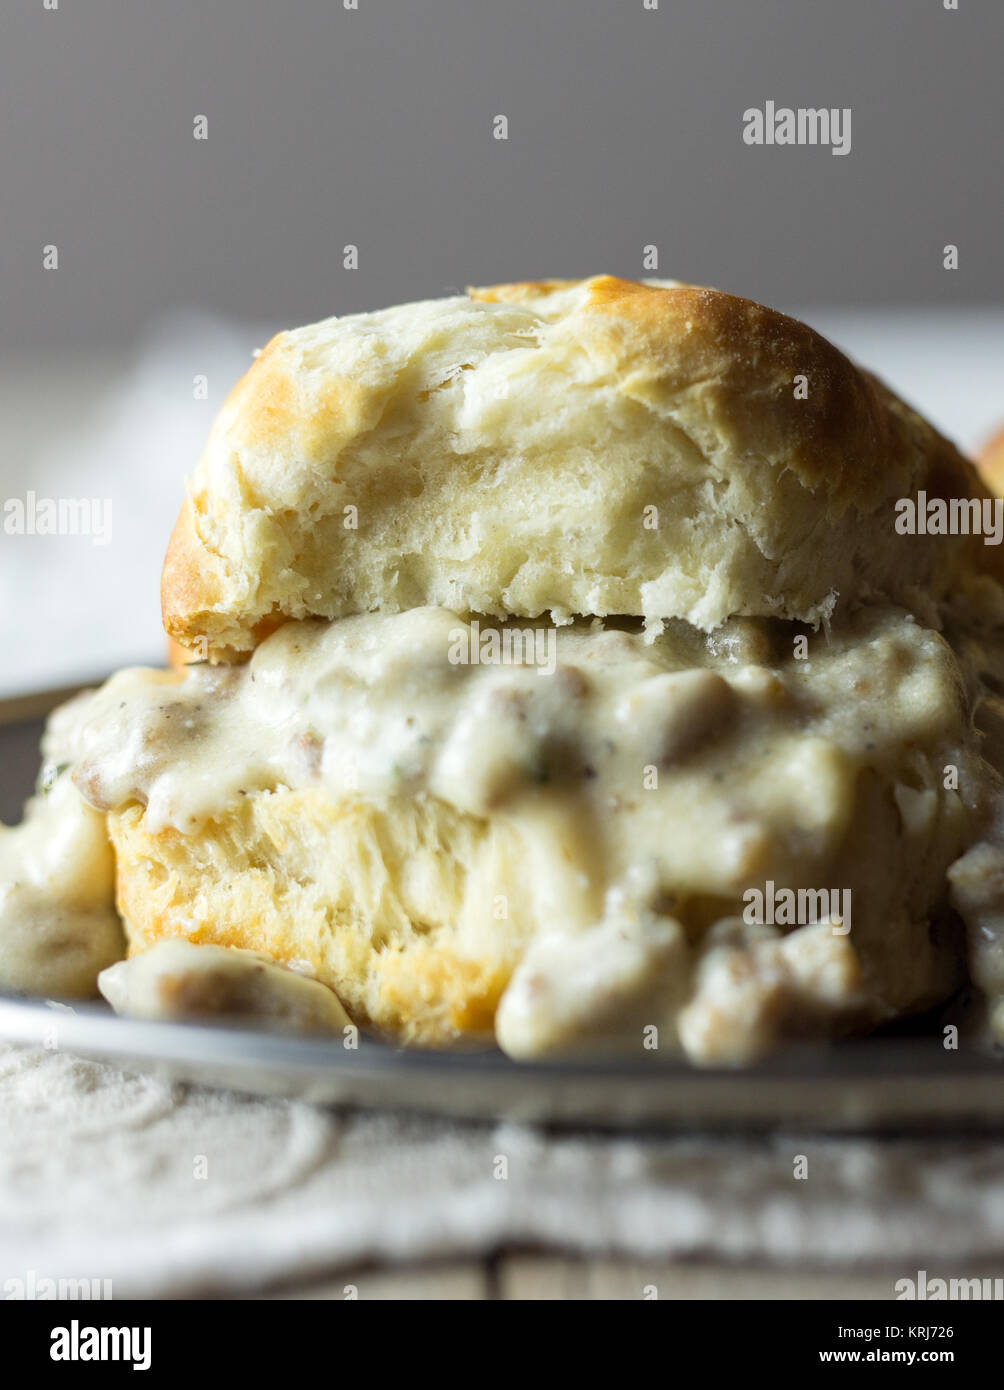 Biscuits with sausage gravy on a silver plate. - Stock Image